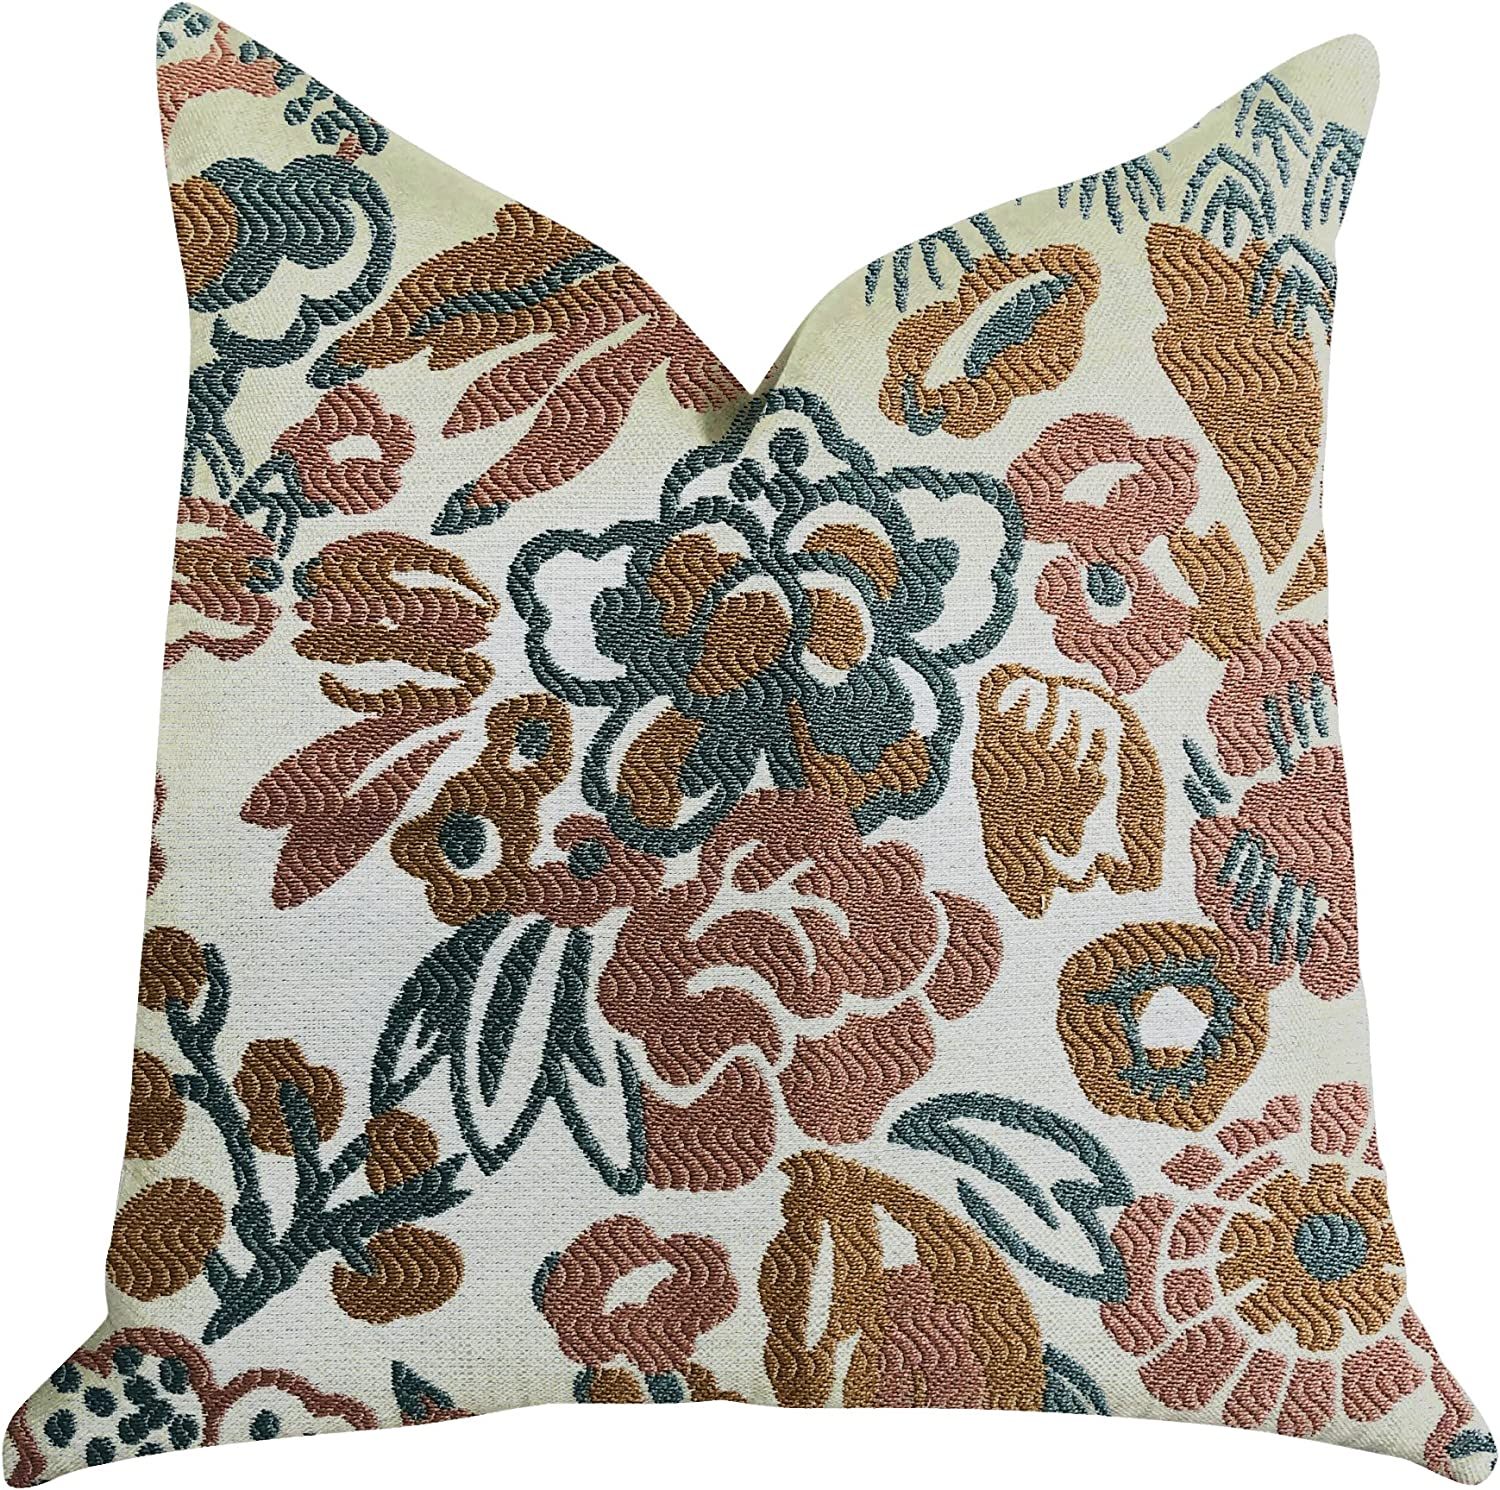 Plutus Brands Floweret Double Sided Luxury Throw Pillow 22 X 22 Green Brown White Home Kitchen